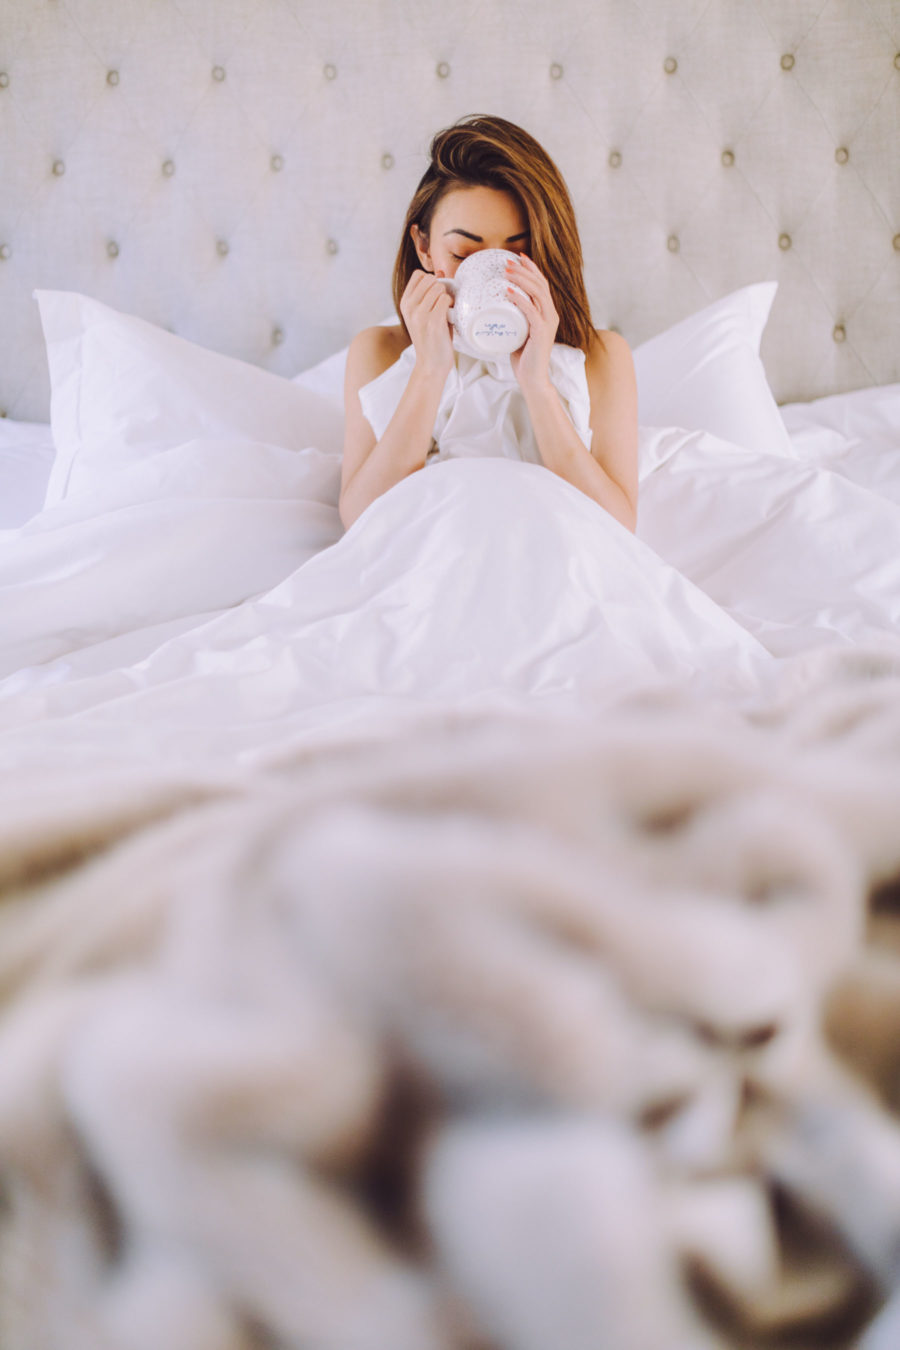 jessica wang makes bedroom feel like a 5-star hotel with four seasons at home bedding // Notjessfashion.com